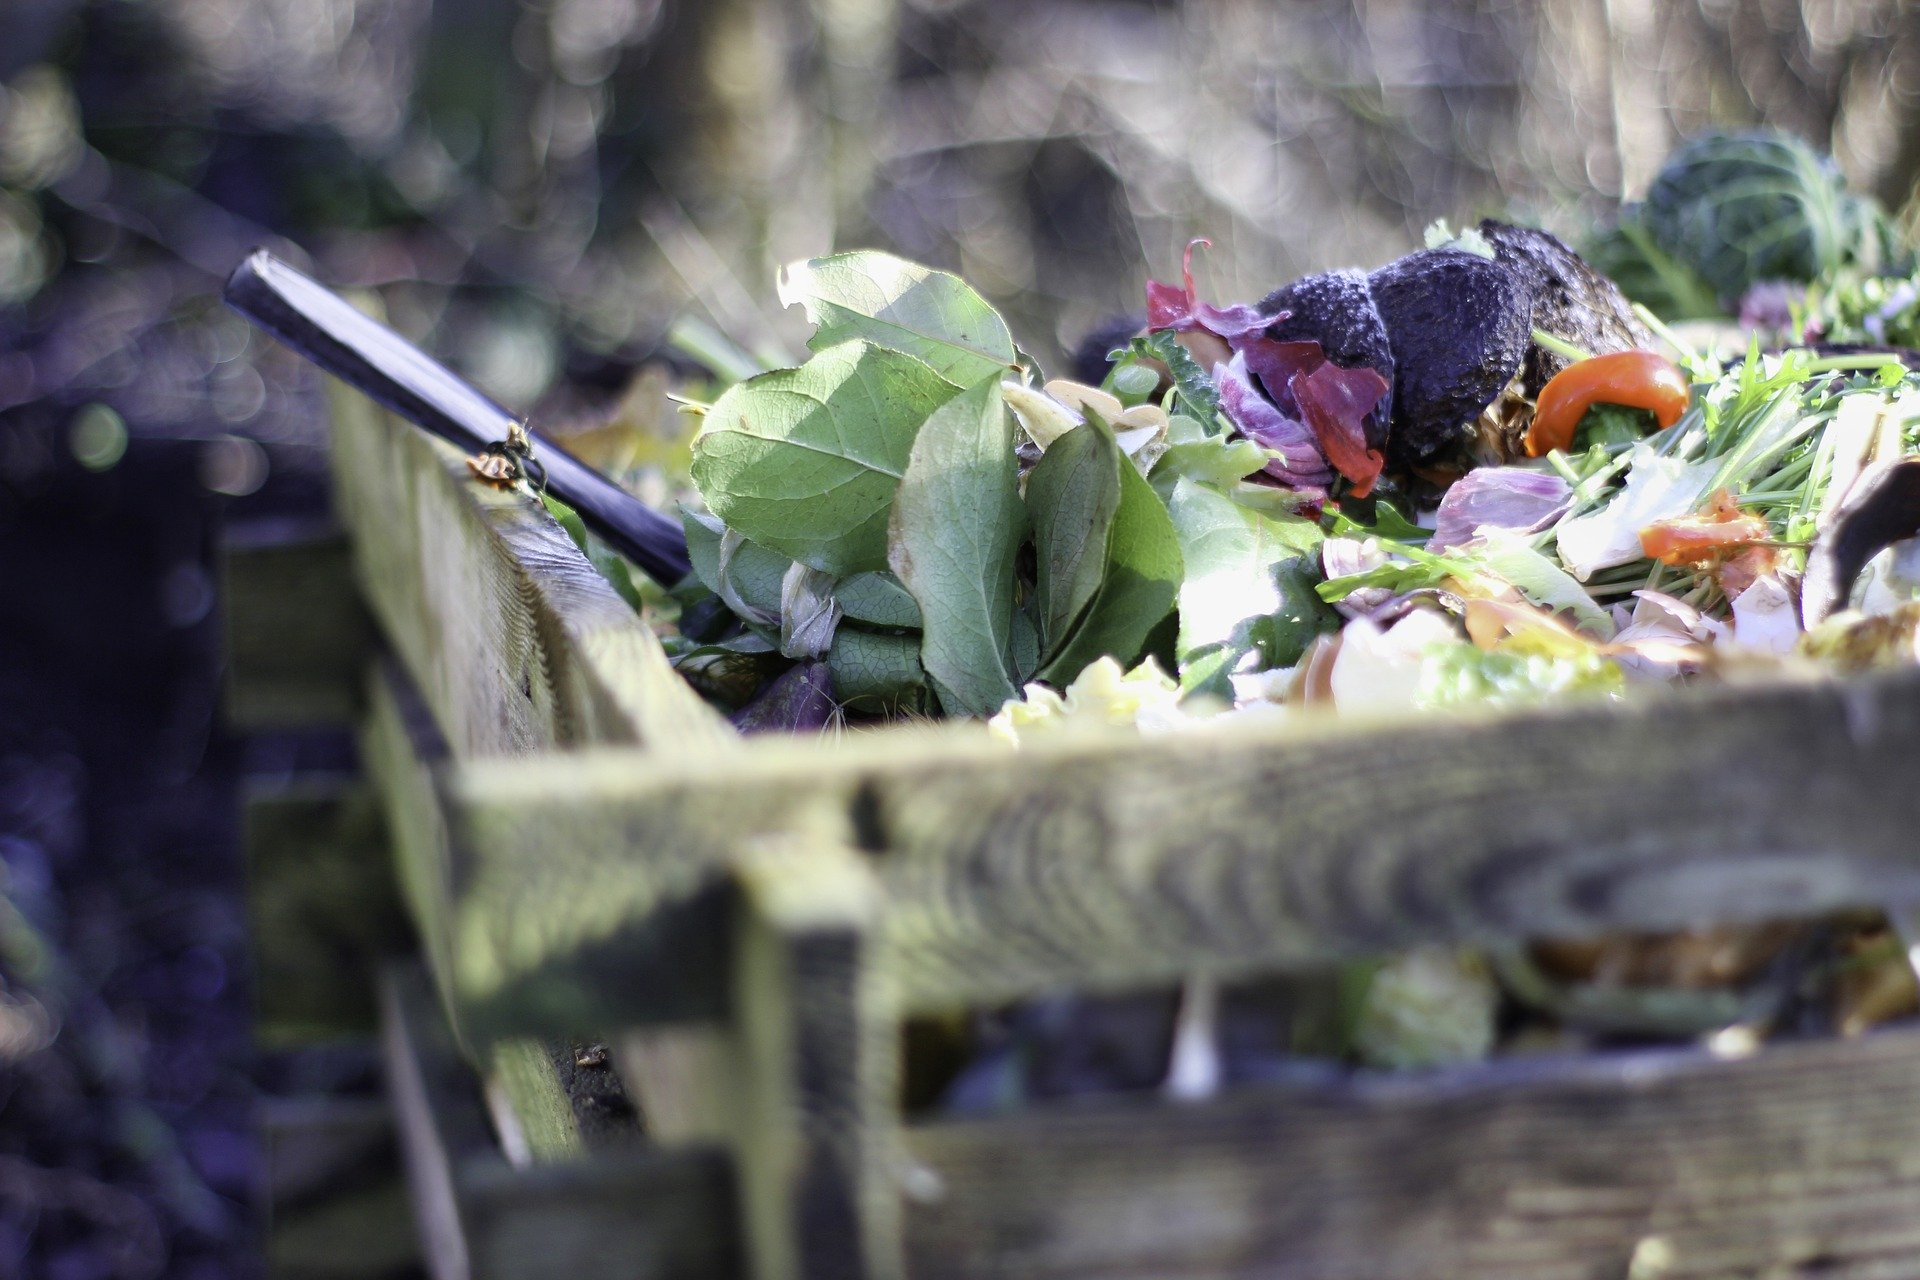 How to Get Started Composting at Home